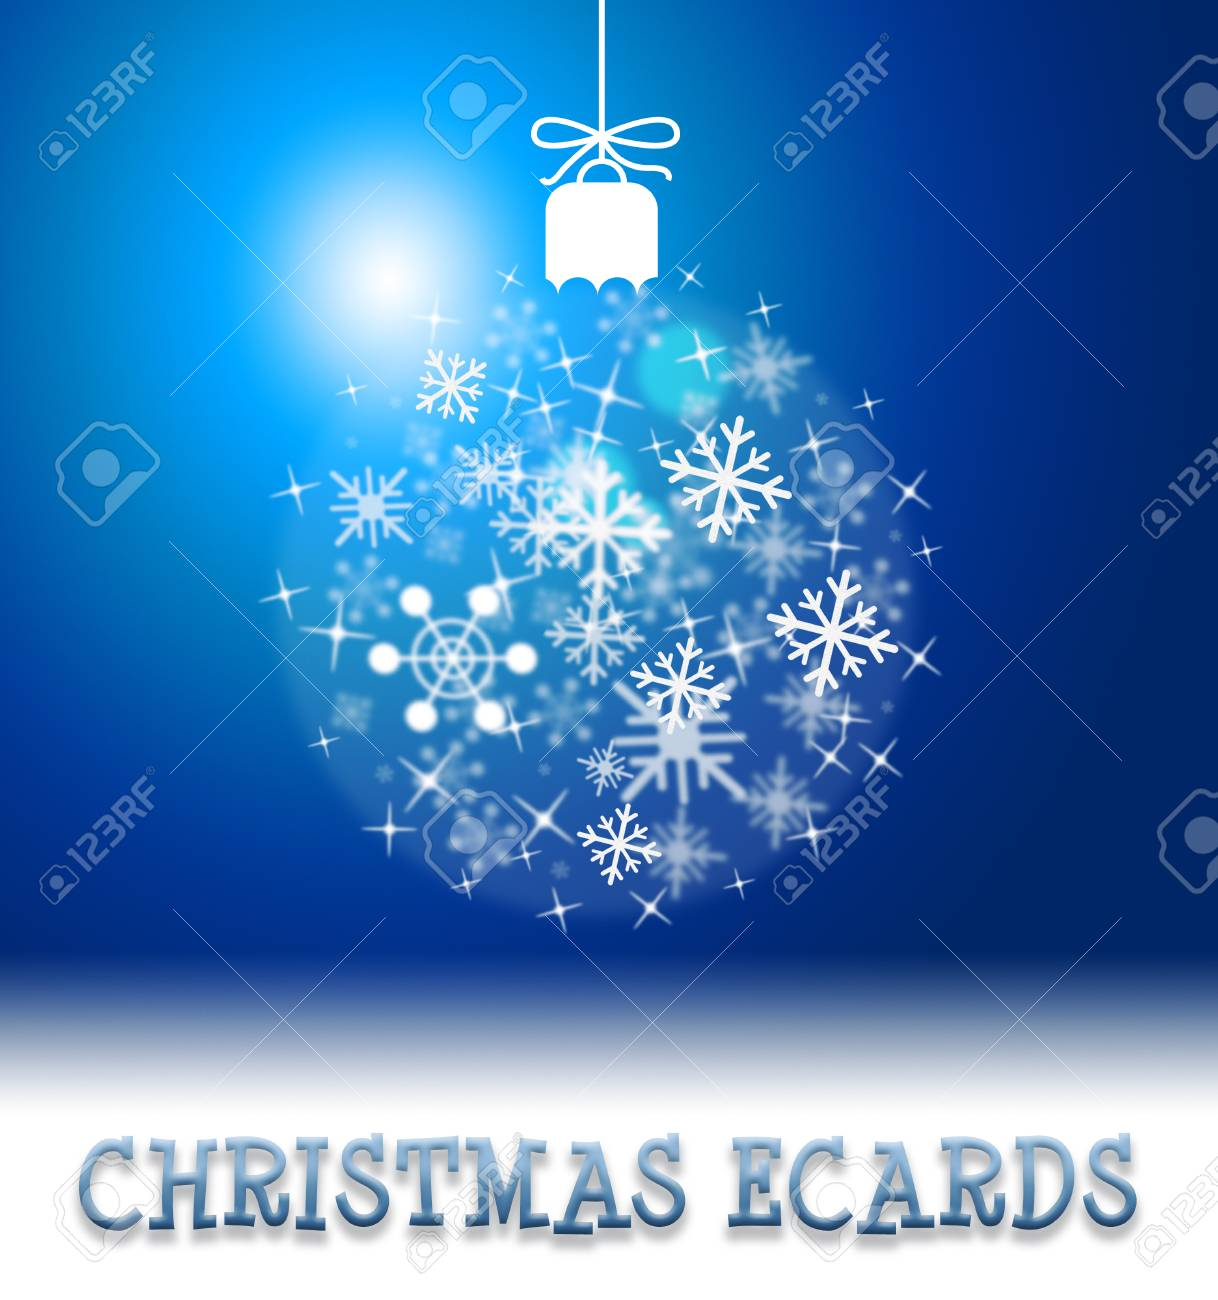 Christmas Ecards.Christmas Ecards Ball Decoration Shows Xmas Card Online Greeting